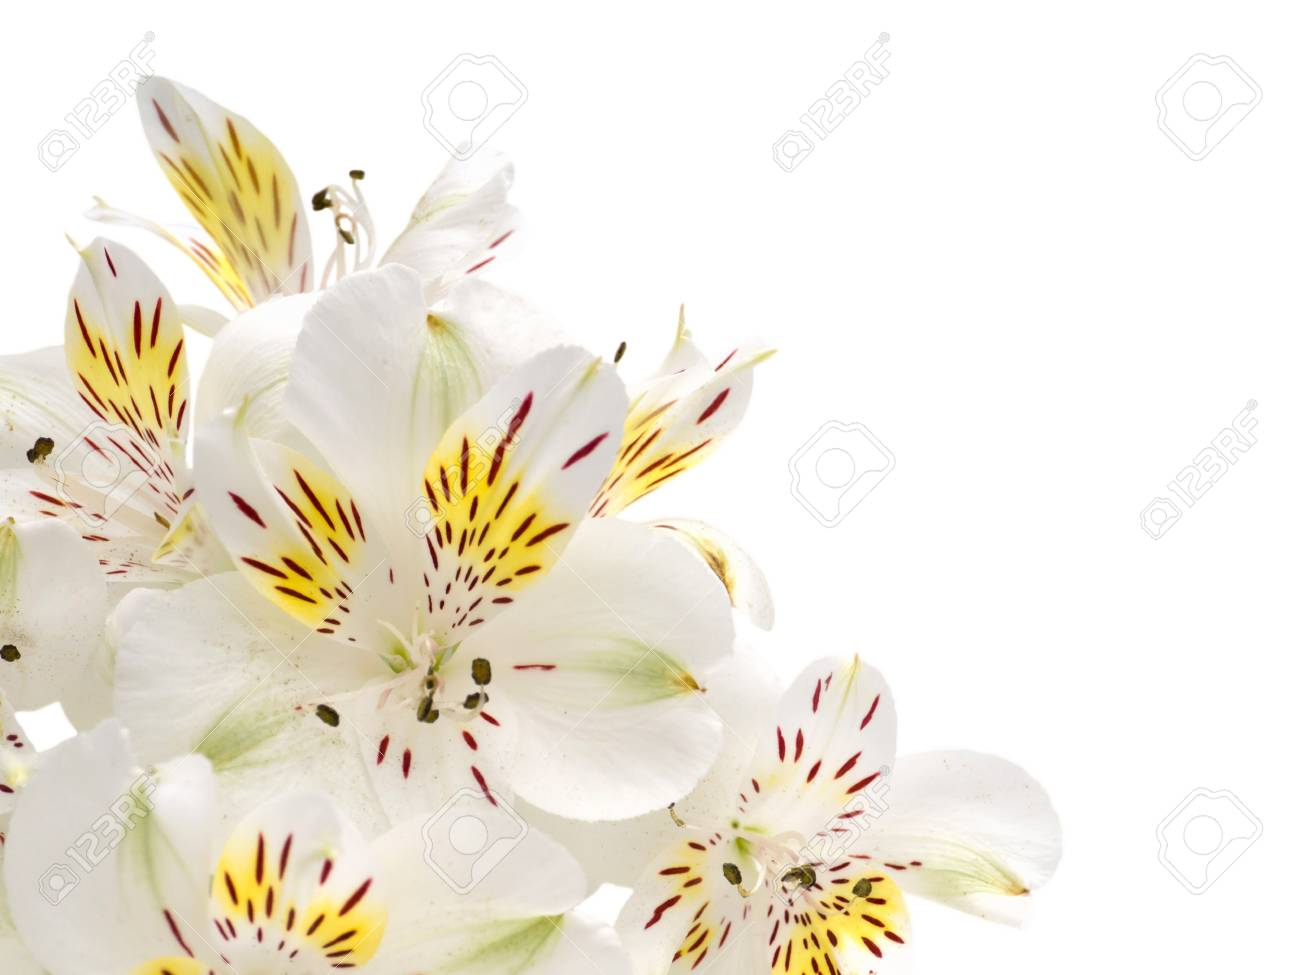 Tender white and yellow alstroemeria flowers in the corner isolated tender white and yellow alstroemeria flowers in the corner isolated on white stock photo 53828087 mightylinksfo Gallery